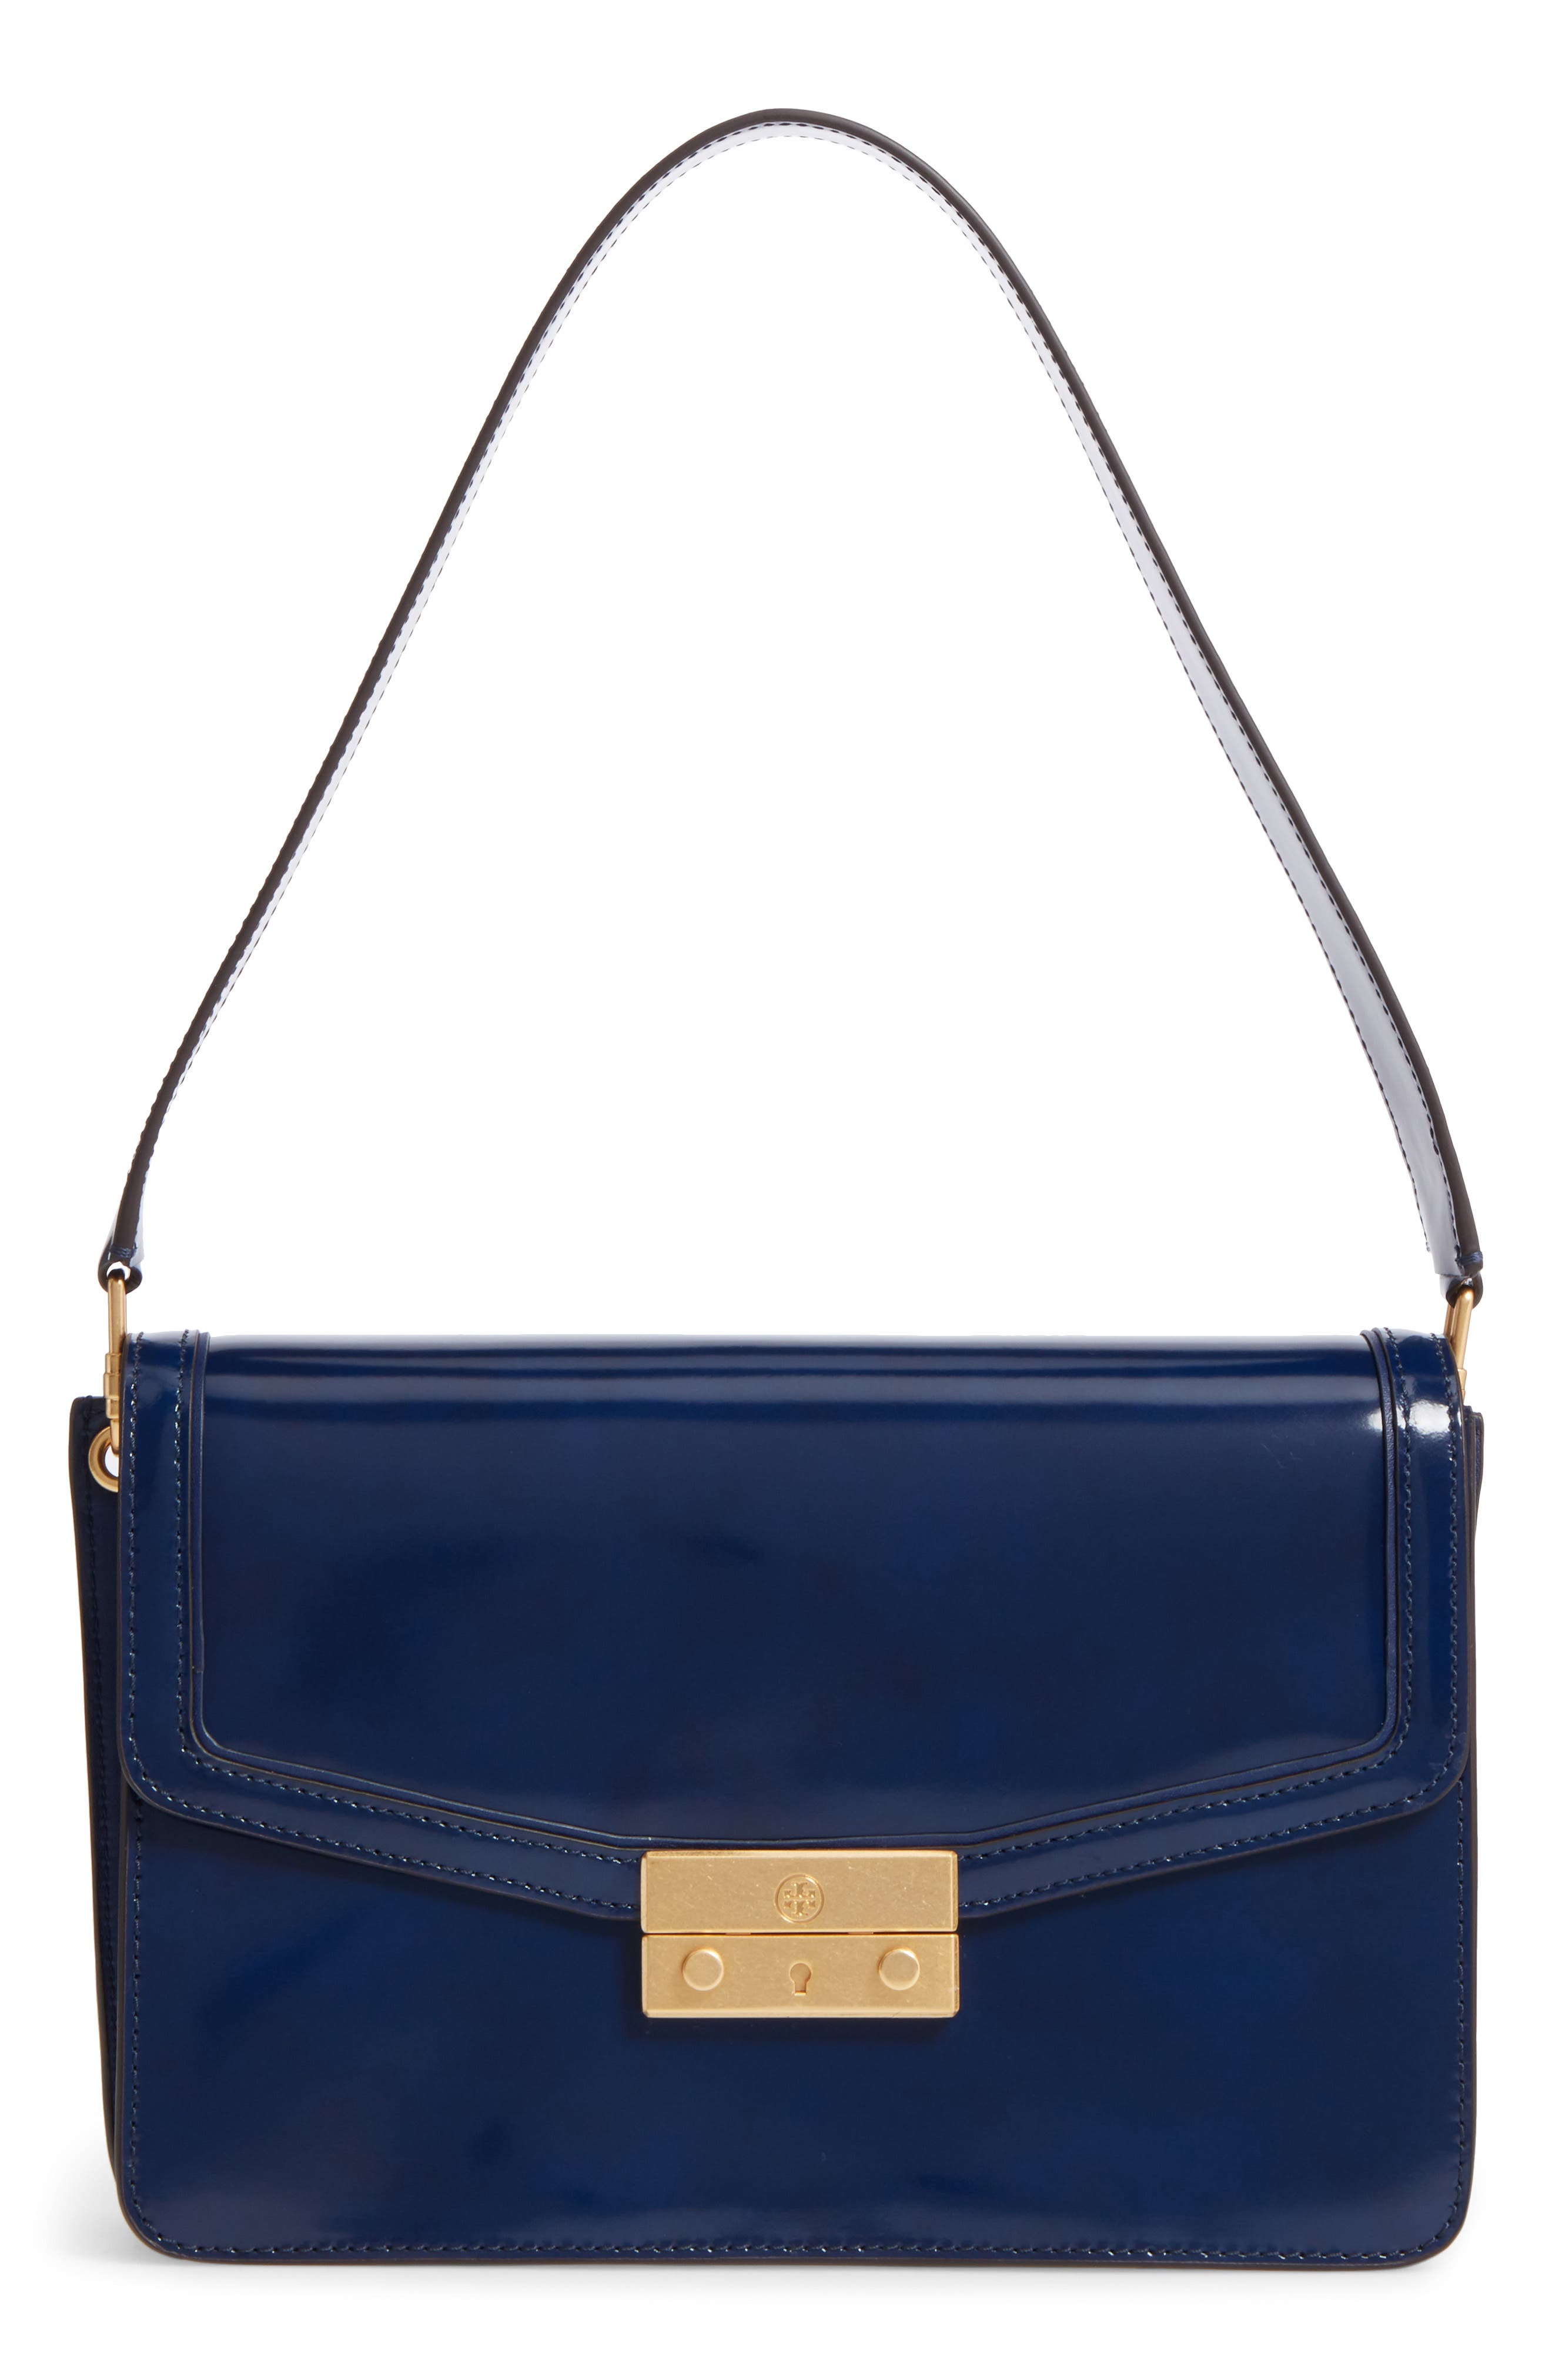 Alternate Image 1 Selected - Tory Burch Juliette Leather Shoulder Bag